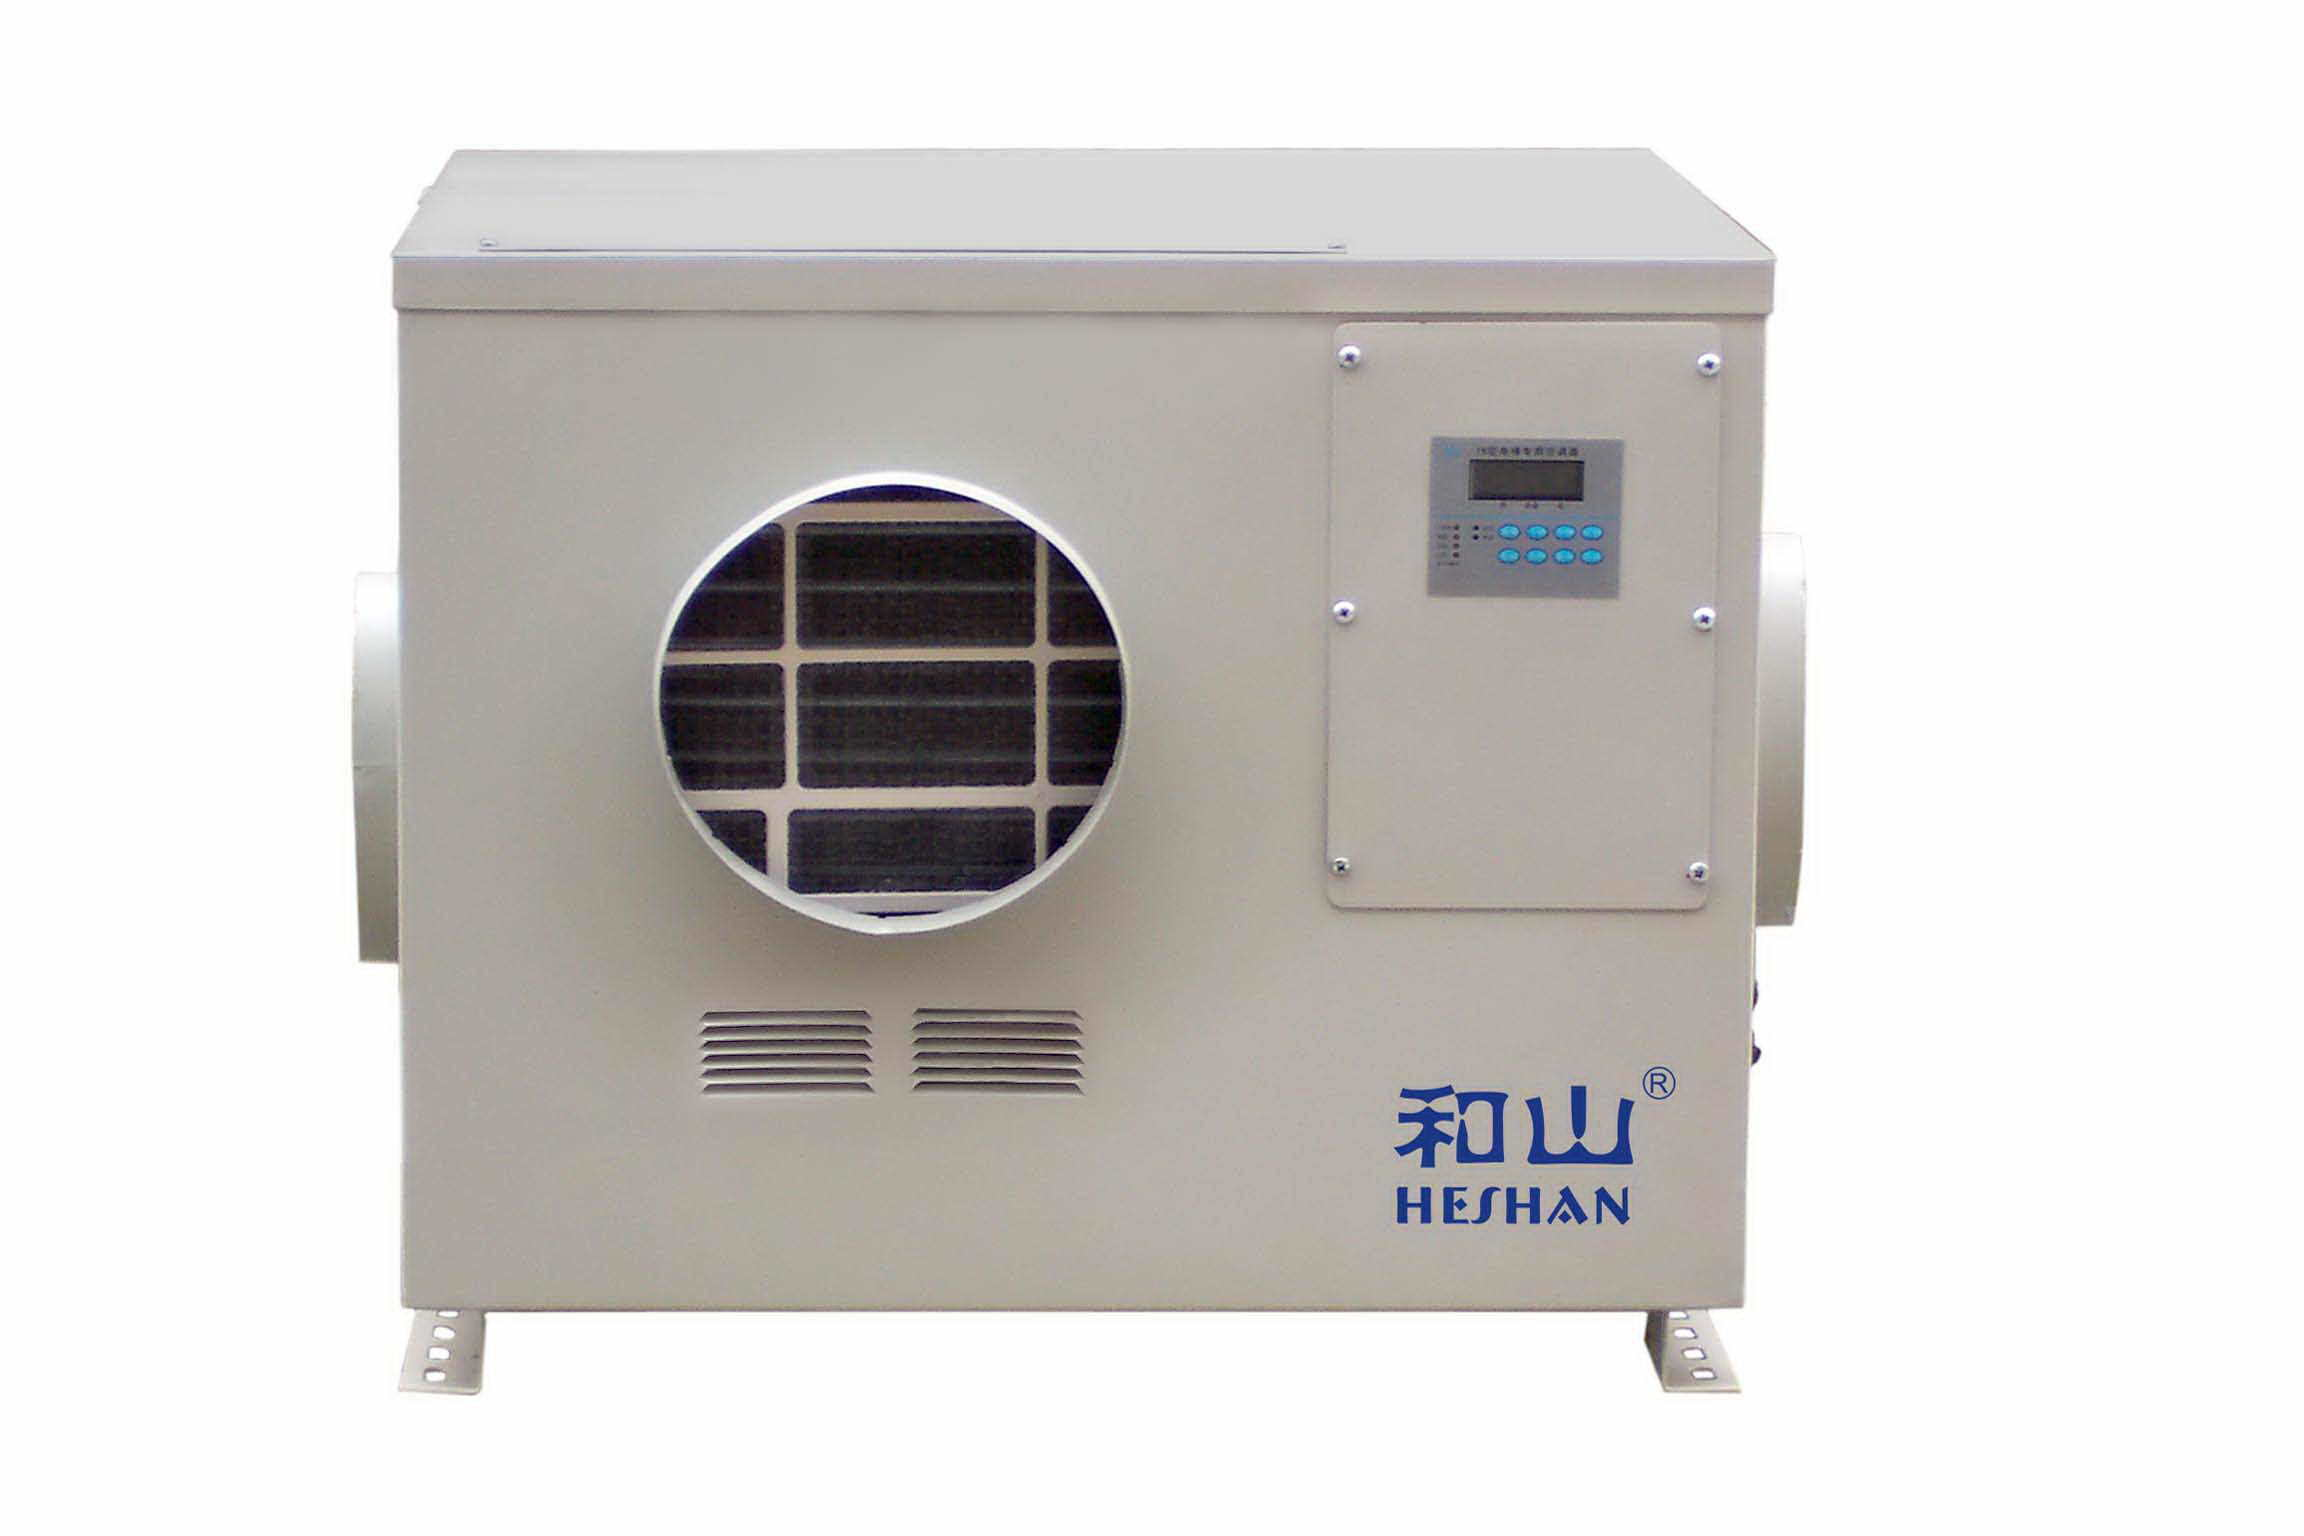 Air Conditioner (TK 32YZ TKD 32YZ) China Elevator Air Conditioner  #26397F